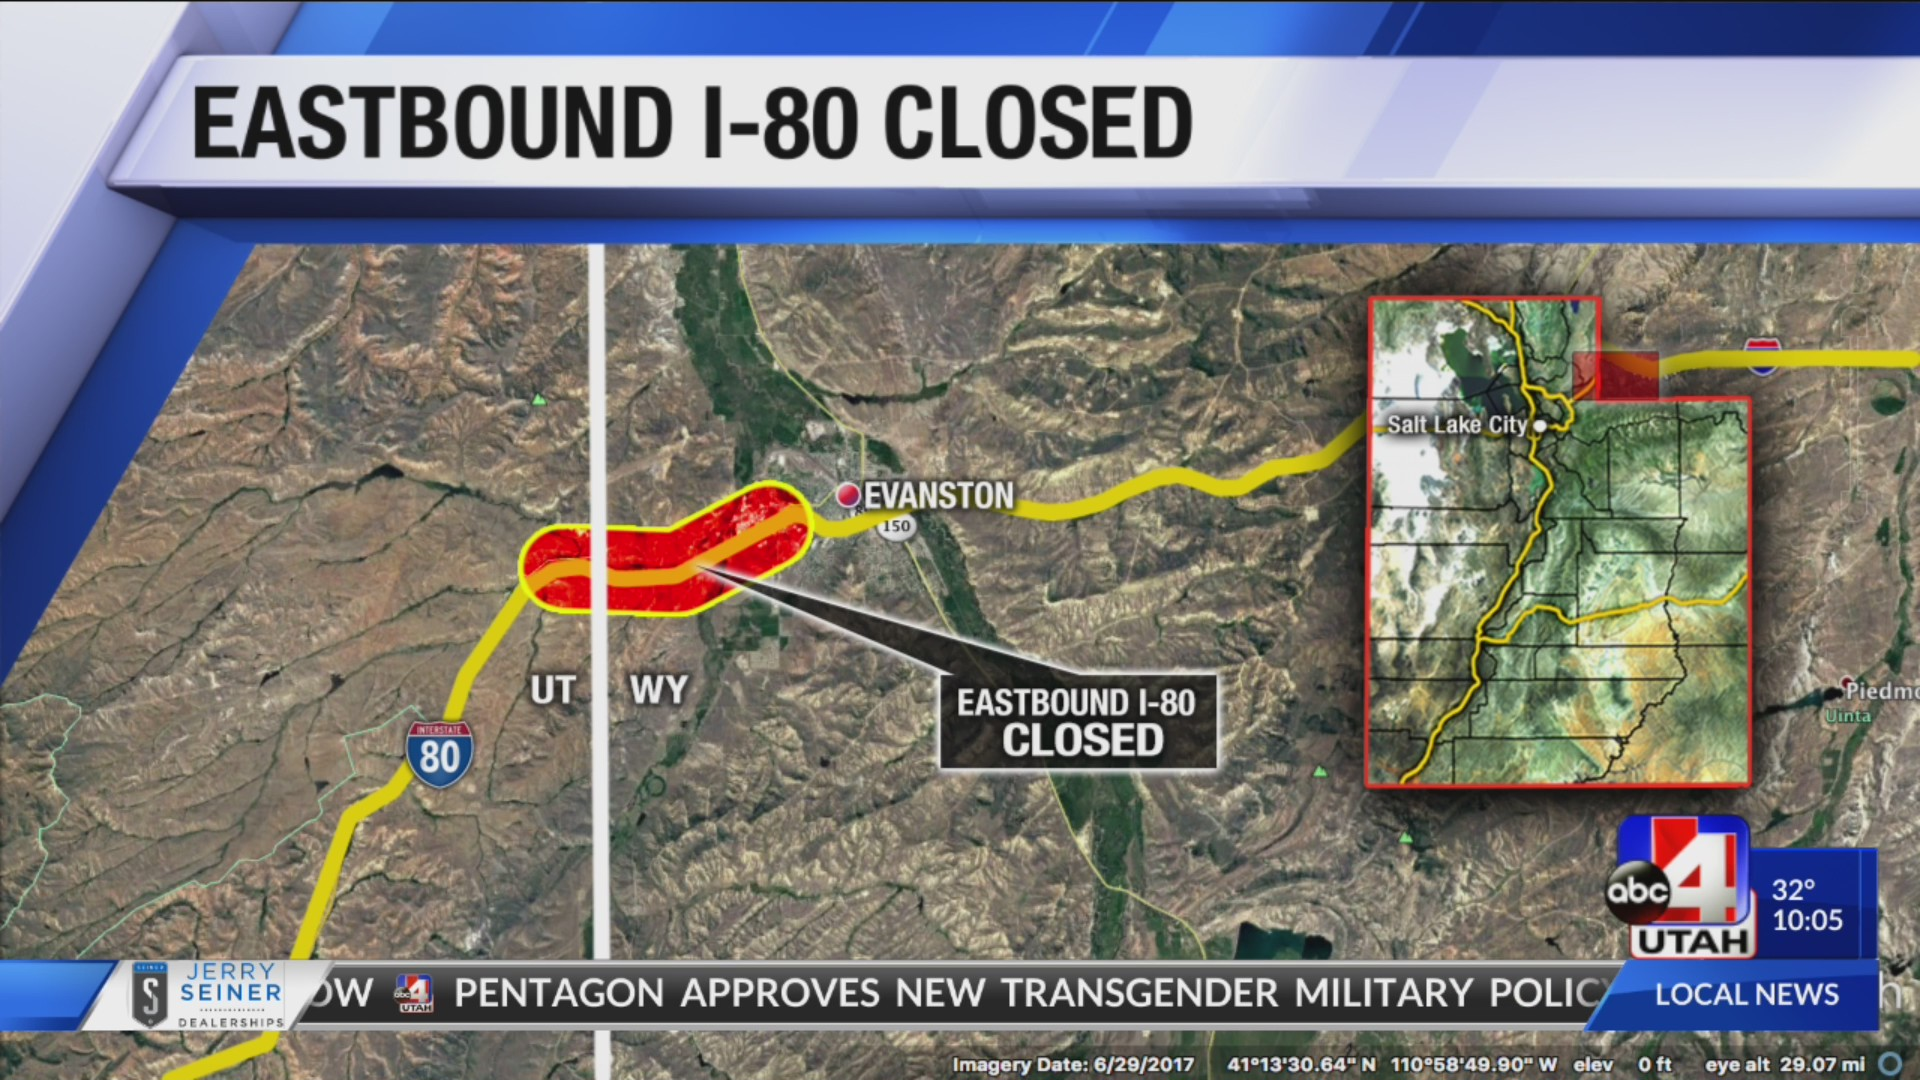 Traffic Alert: EB I-80 closed due to winter conditions